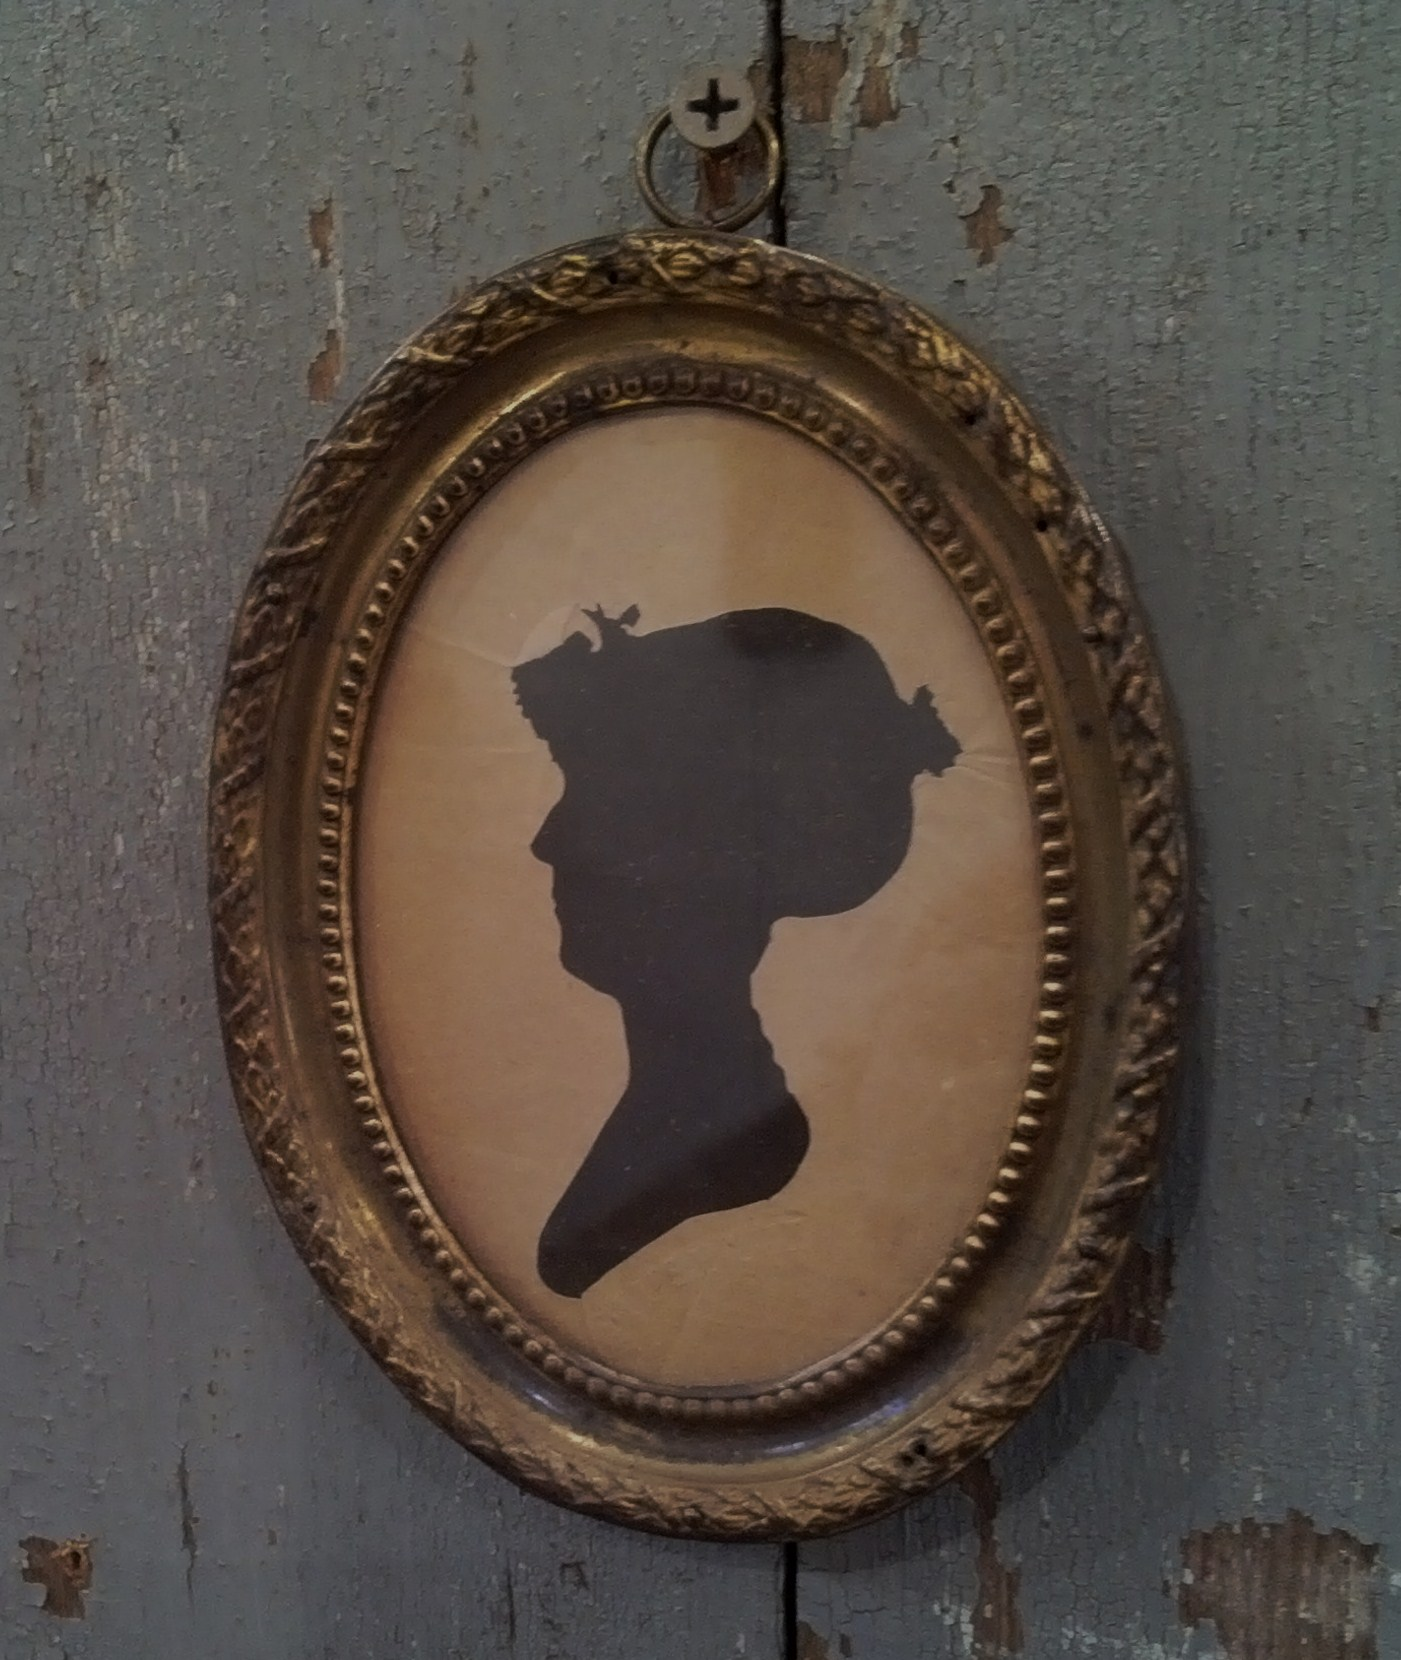 Silhouette in oval frame